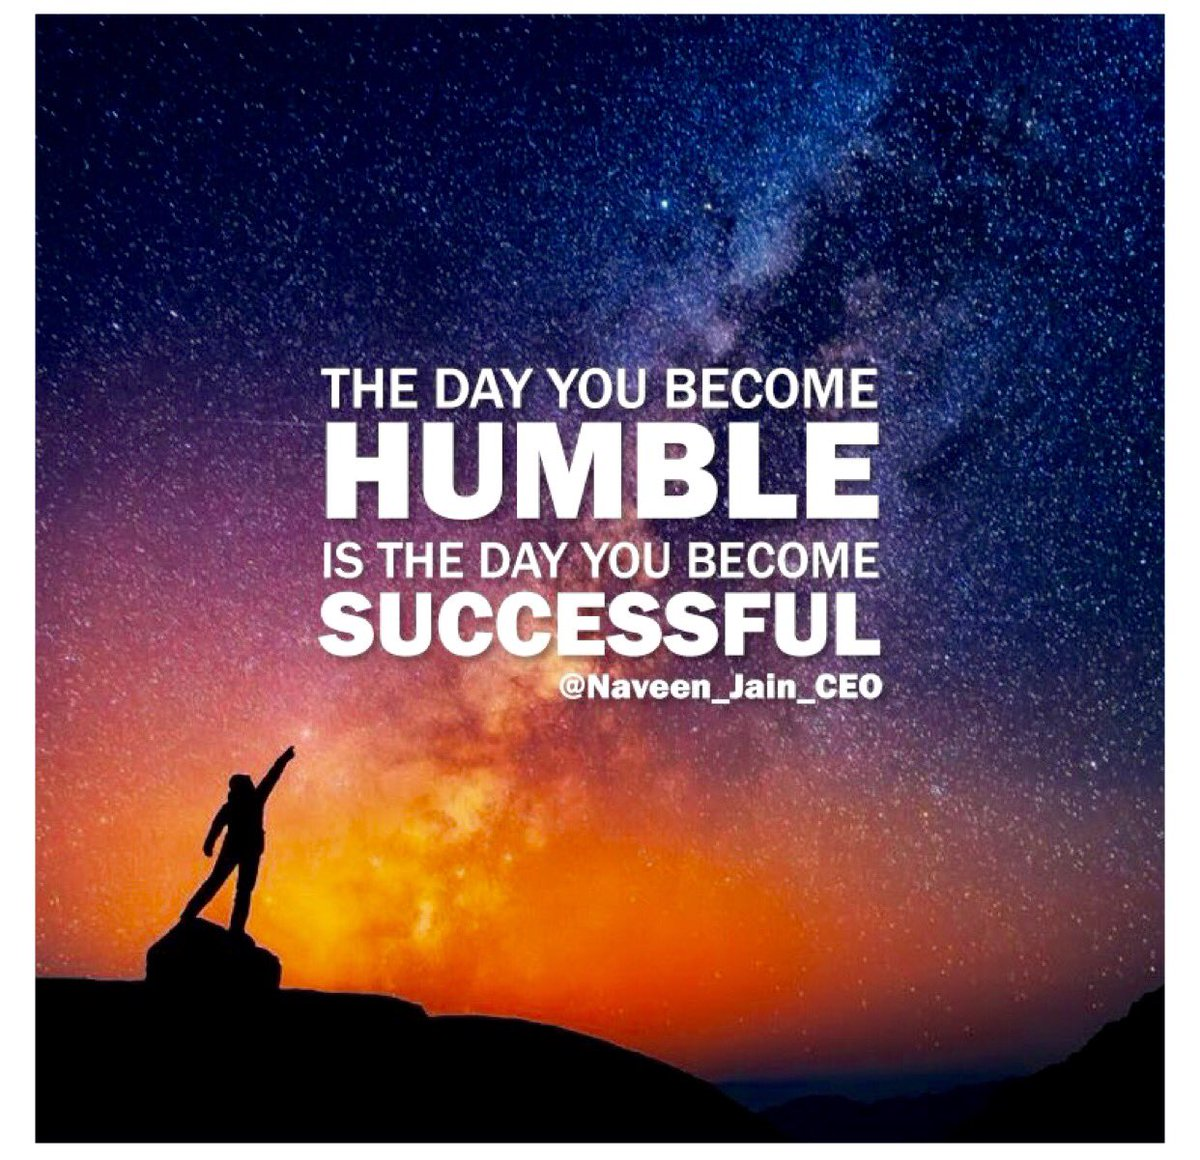 The Day You Become Humble...  @10MillionMiler #quote #Inspiration #success RT @Naveen_Jain_CEO @AriBernsteinMD<br>http://pic.twitter.com/MiU94APx5m